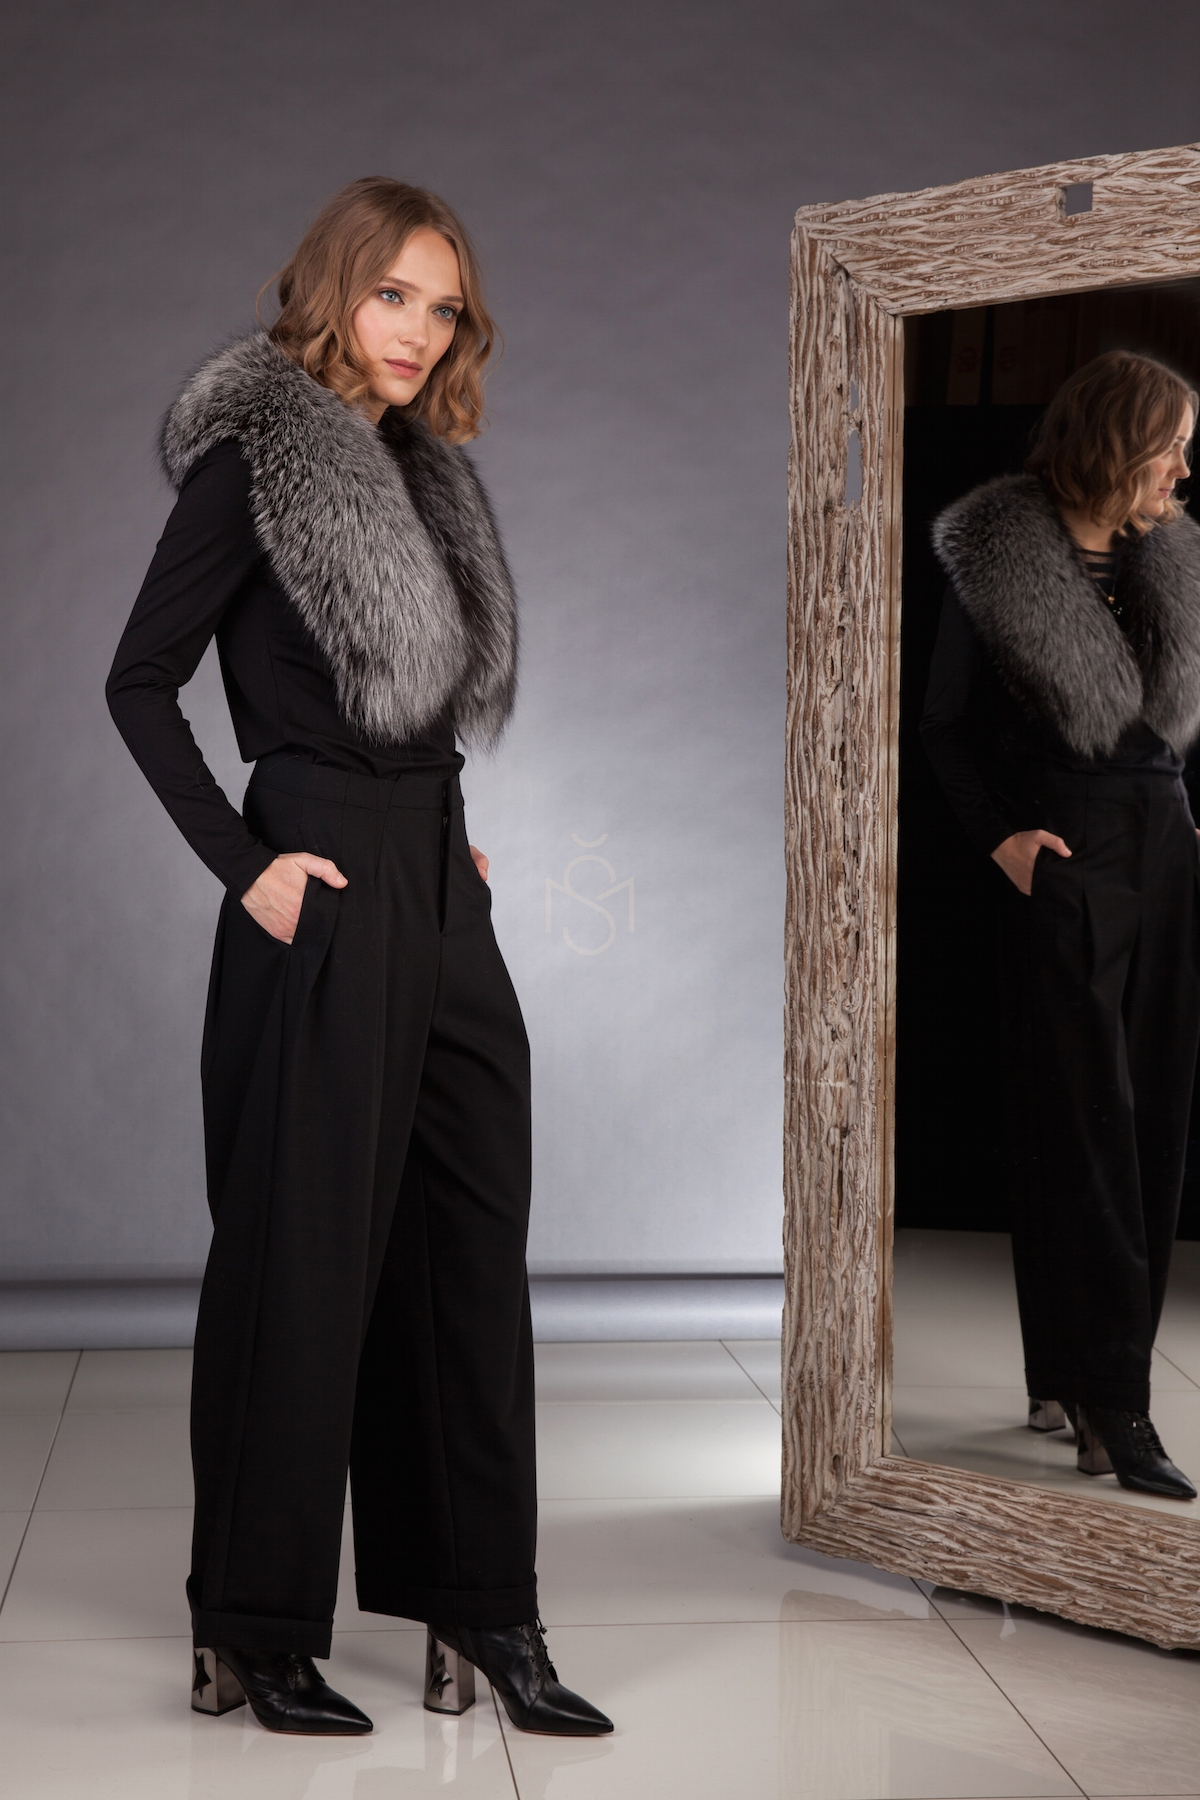 Silver fox fur collar, natural color made by SILTA MADA fur studio in Vilnius